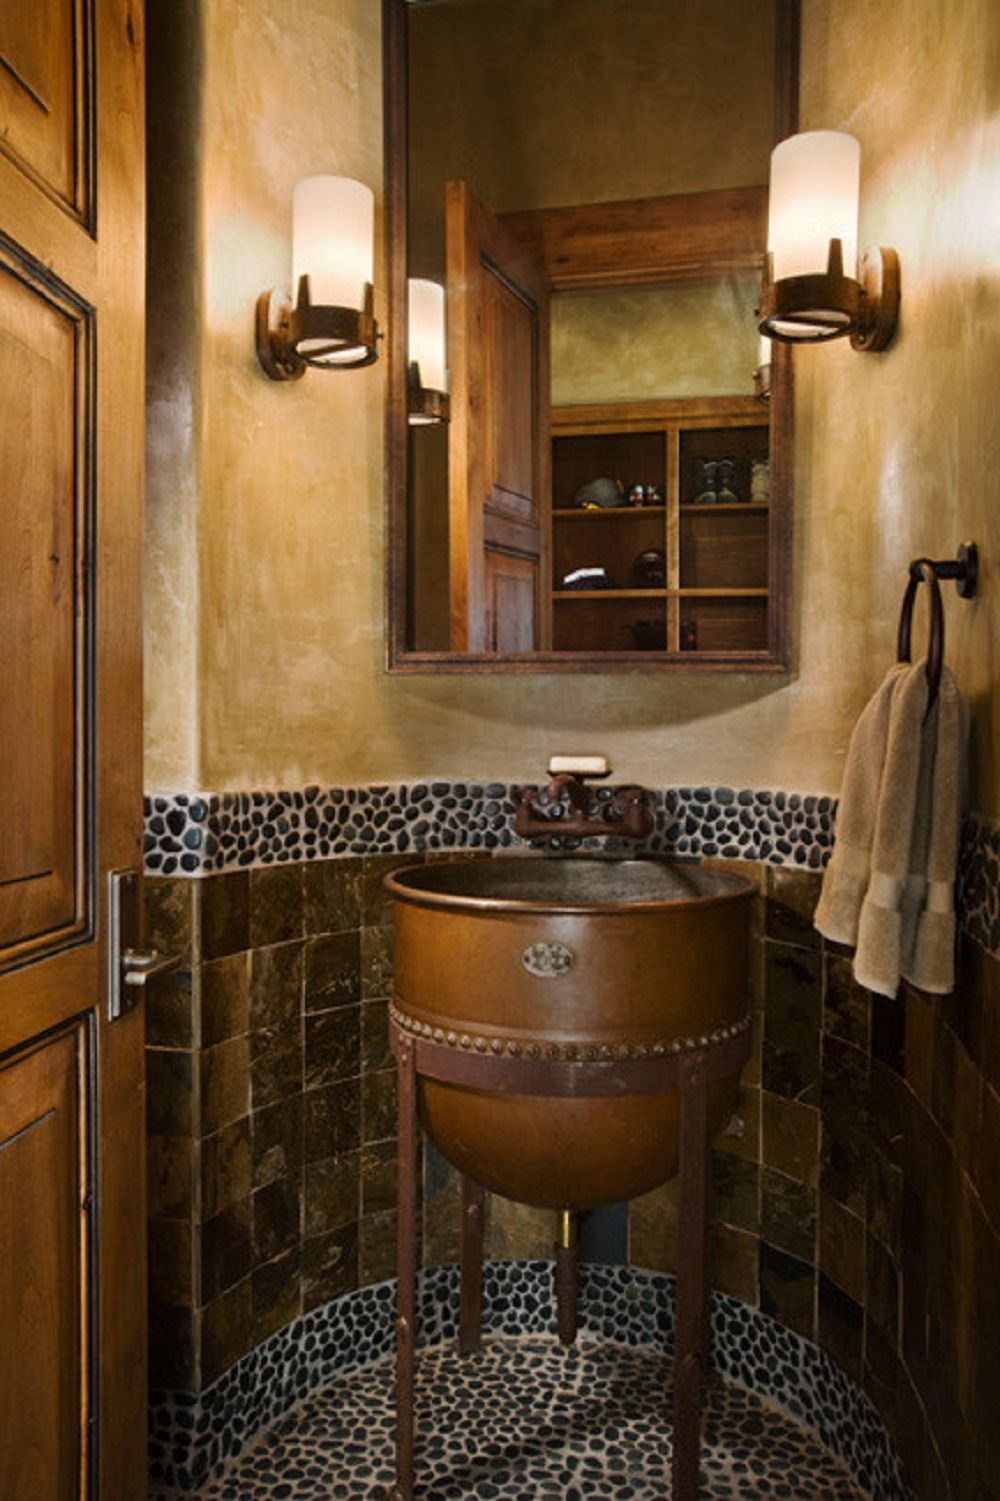 Unique bathroom sink basin with natural stone wall